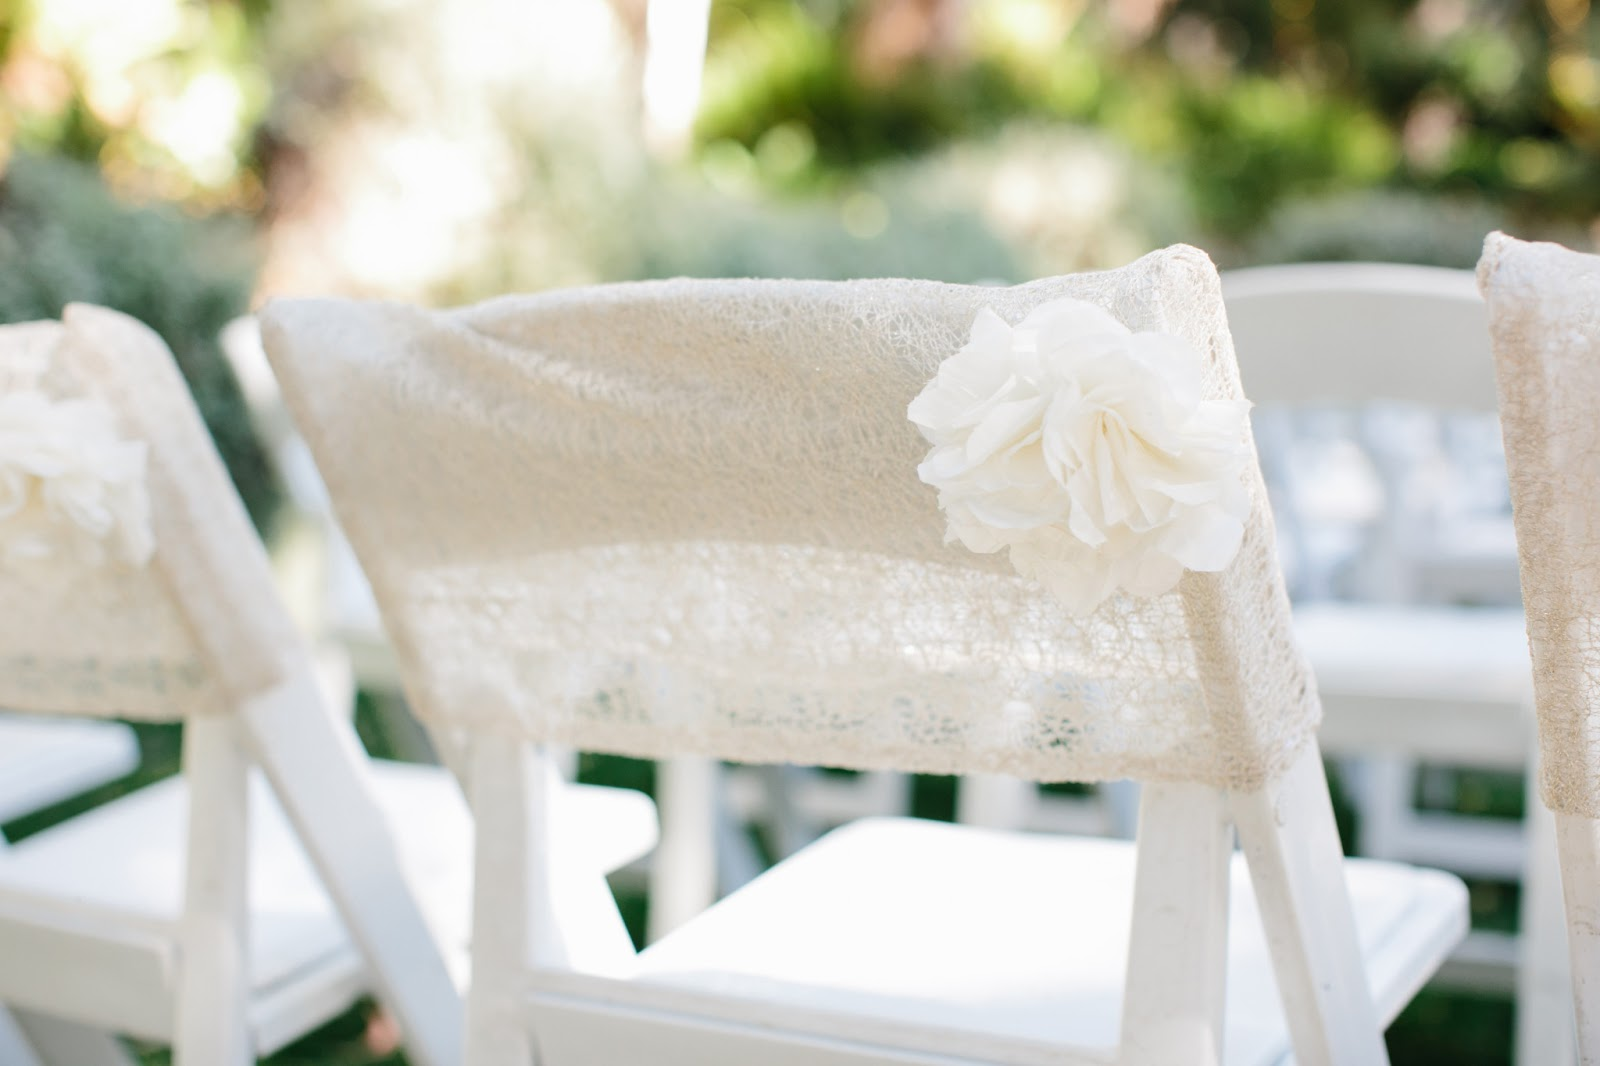 Christmas Wedding Chair Covers Canopy Beach Chairs At Bj S Calamigos Ranch Malibu In July